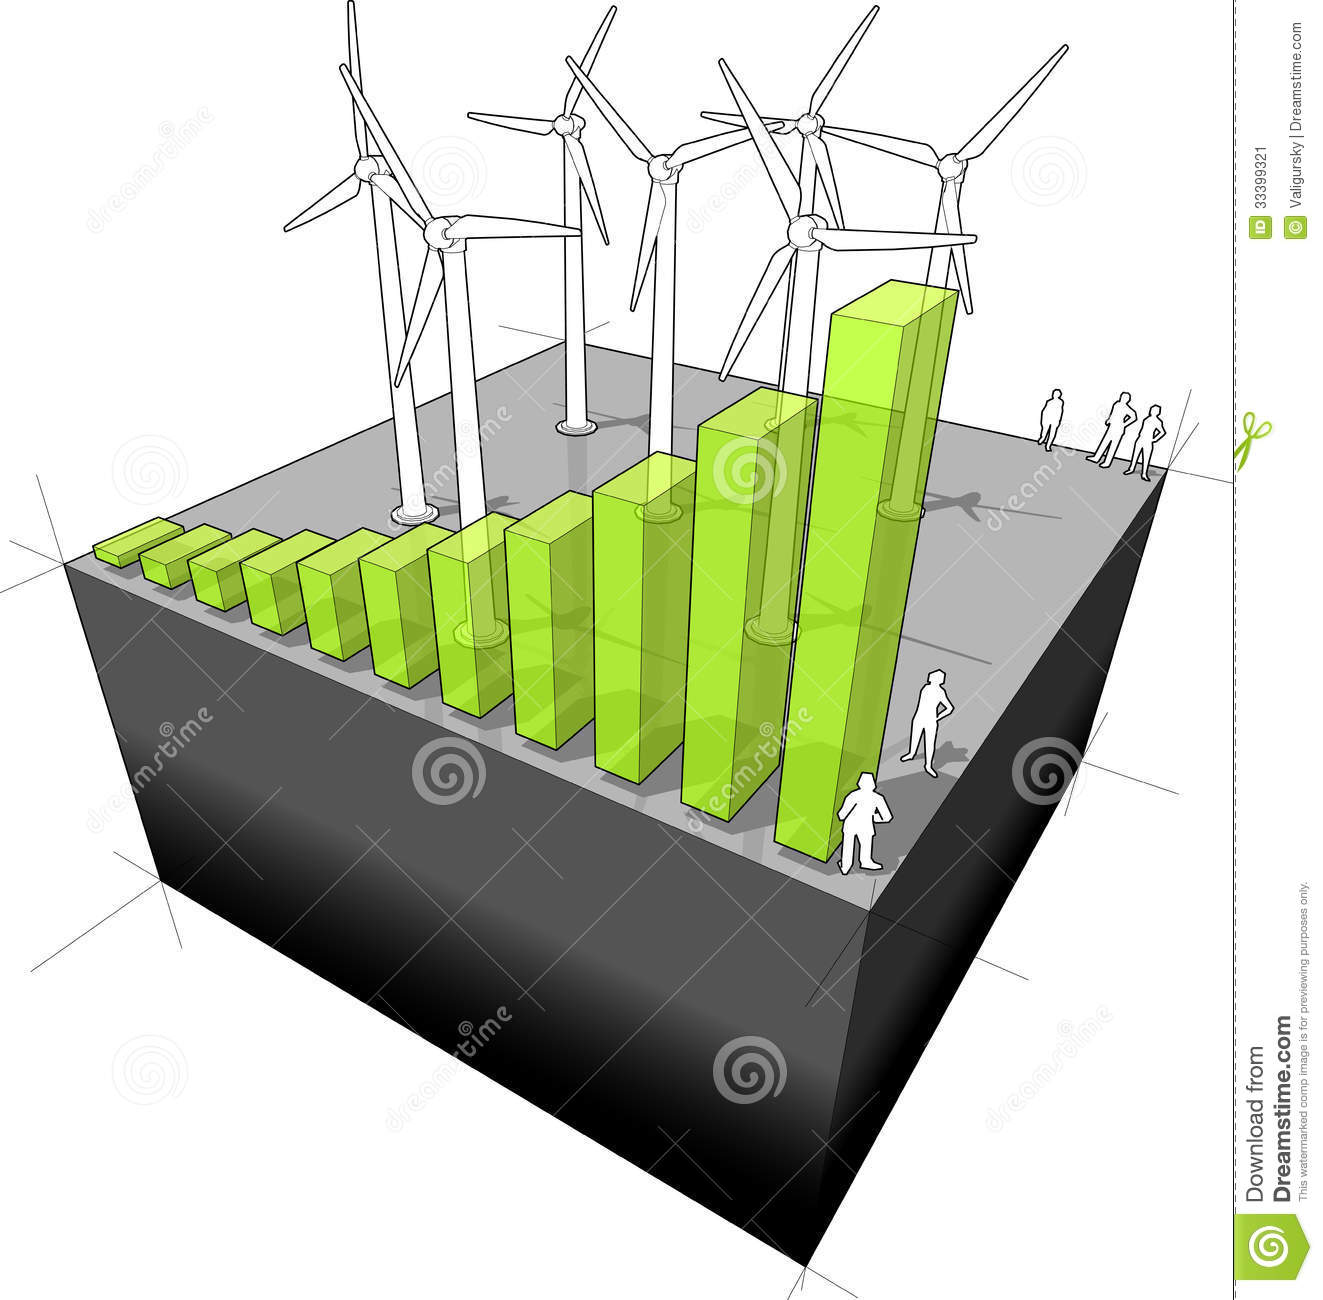 Diagram of a wind turbine farm with rising bar diagram symbolising